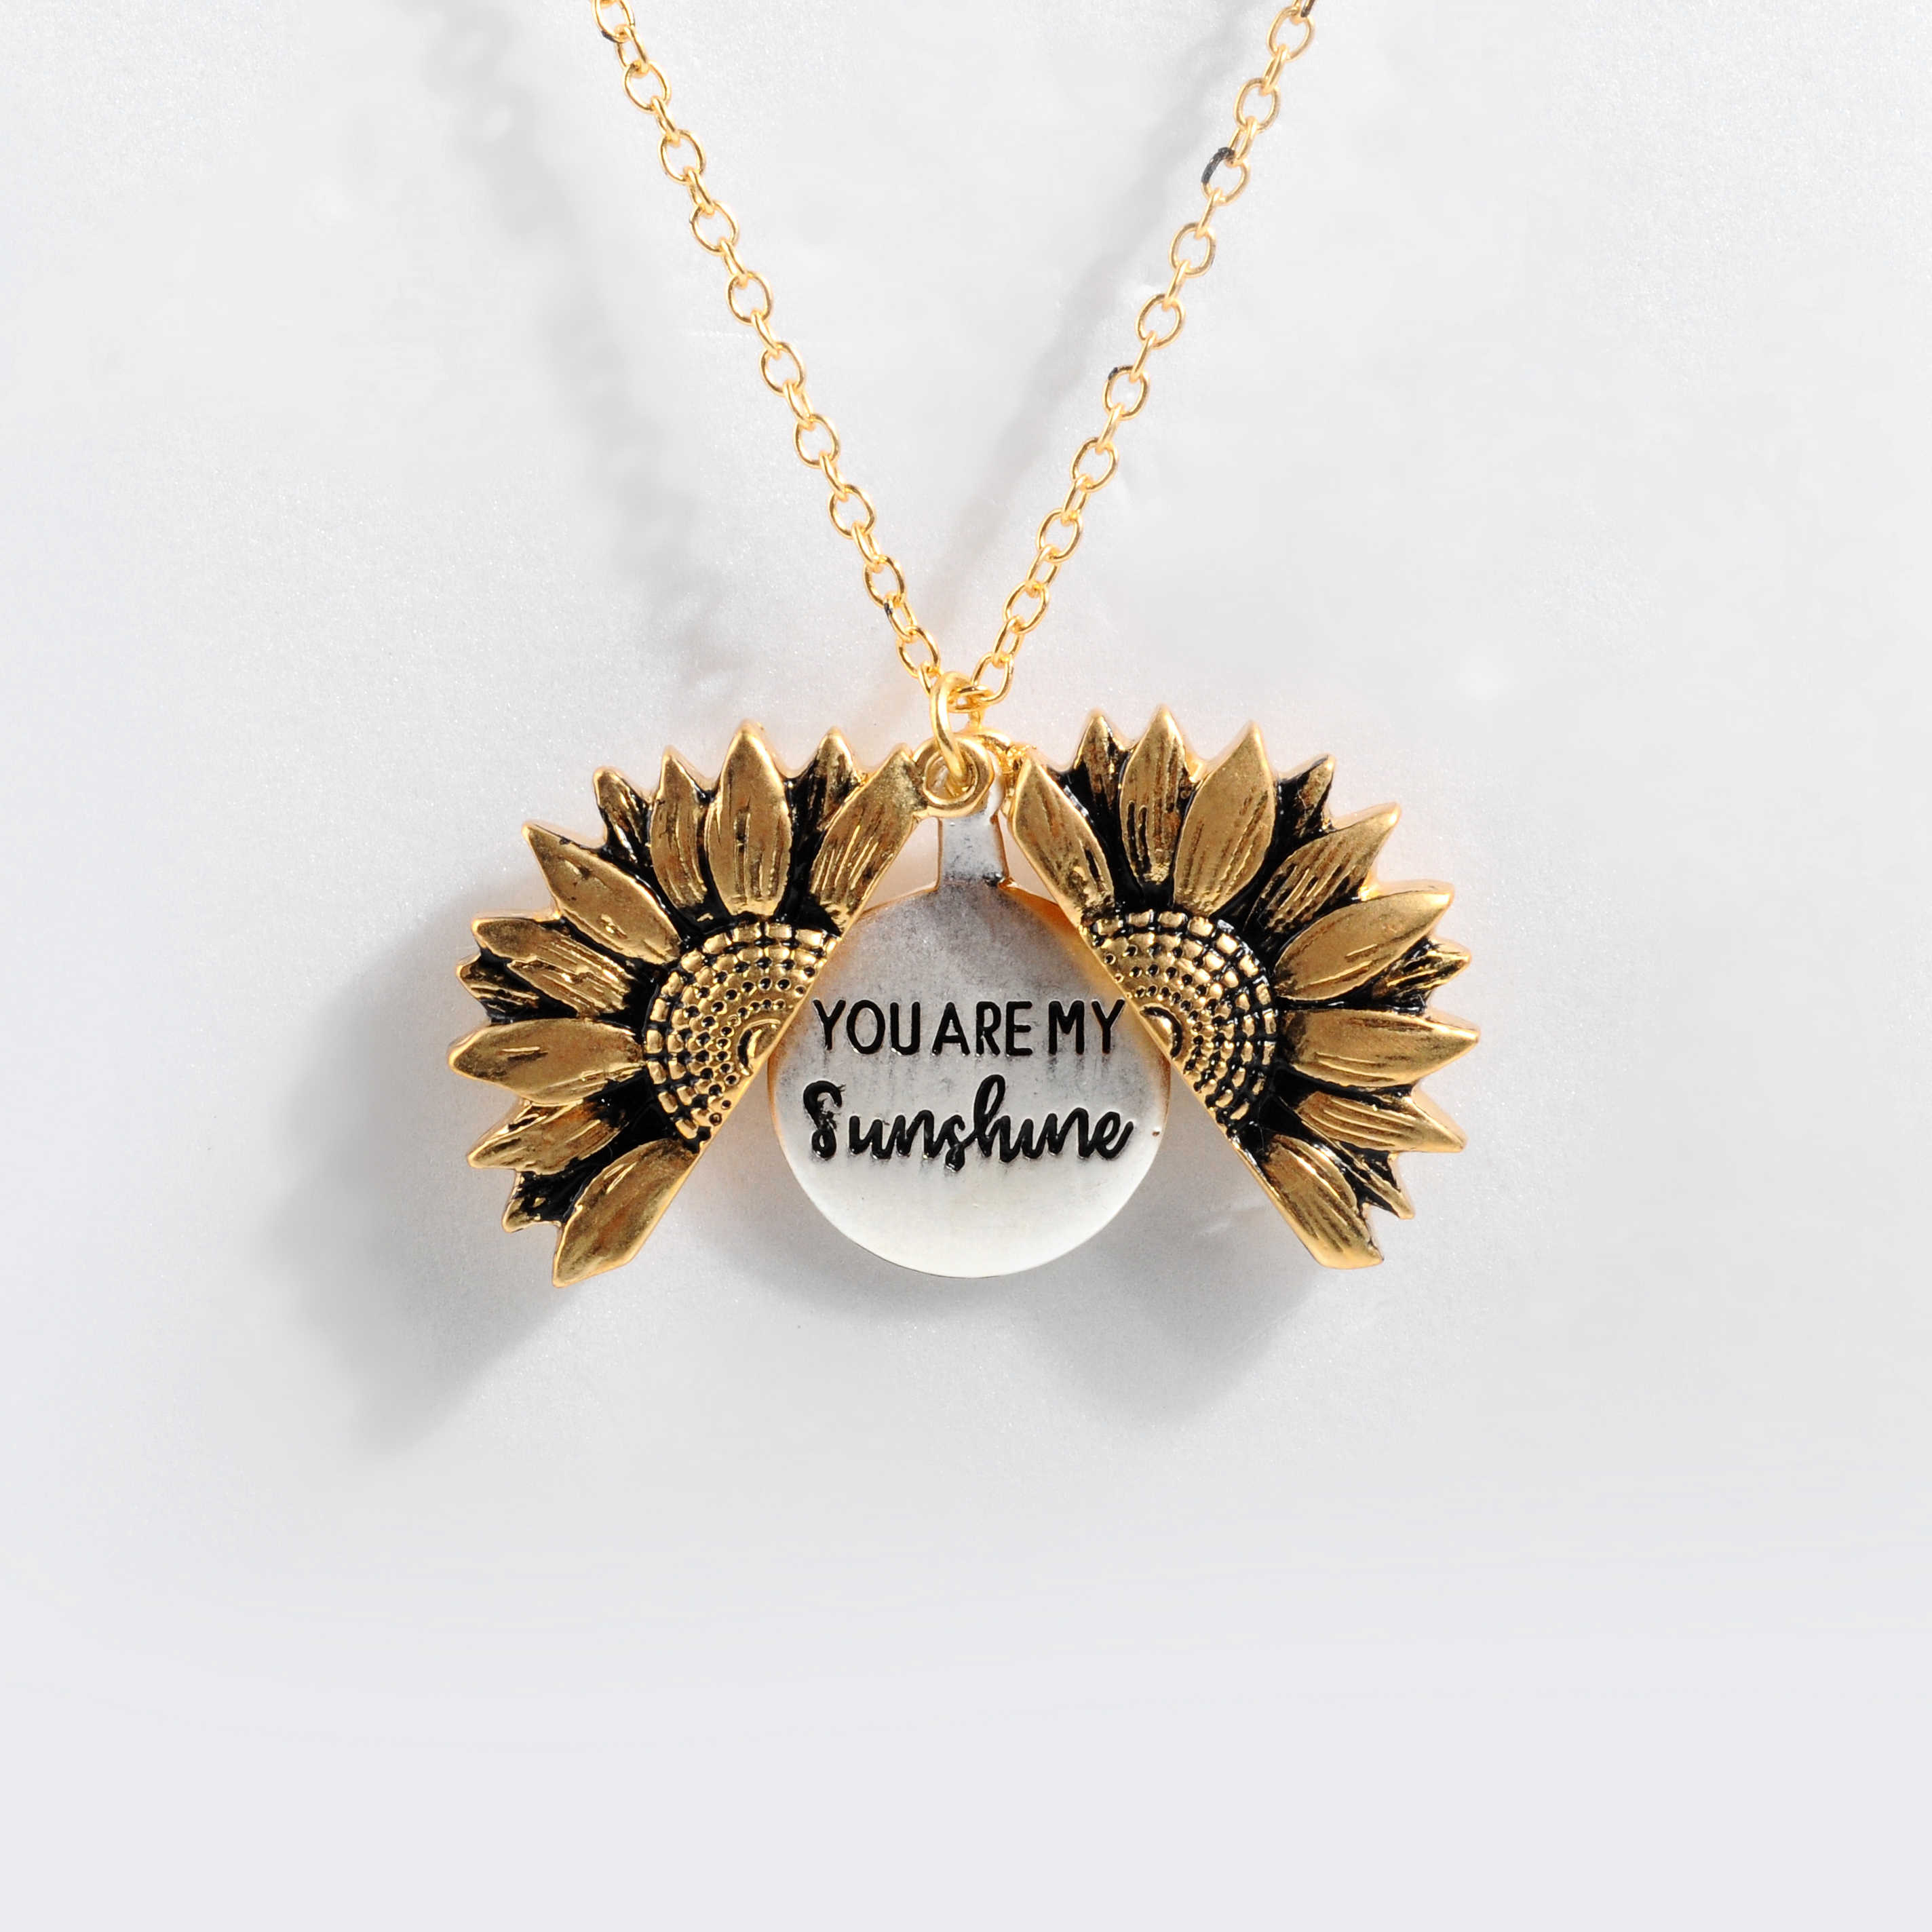 Droshipping Only Antique Gold Open Locket Sunflower Pendant Necklace